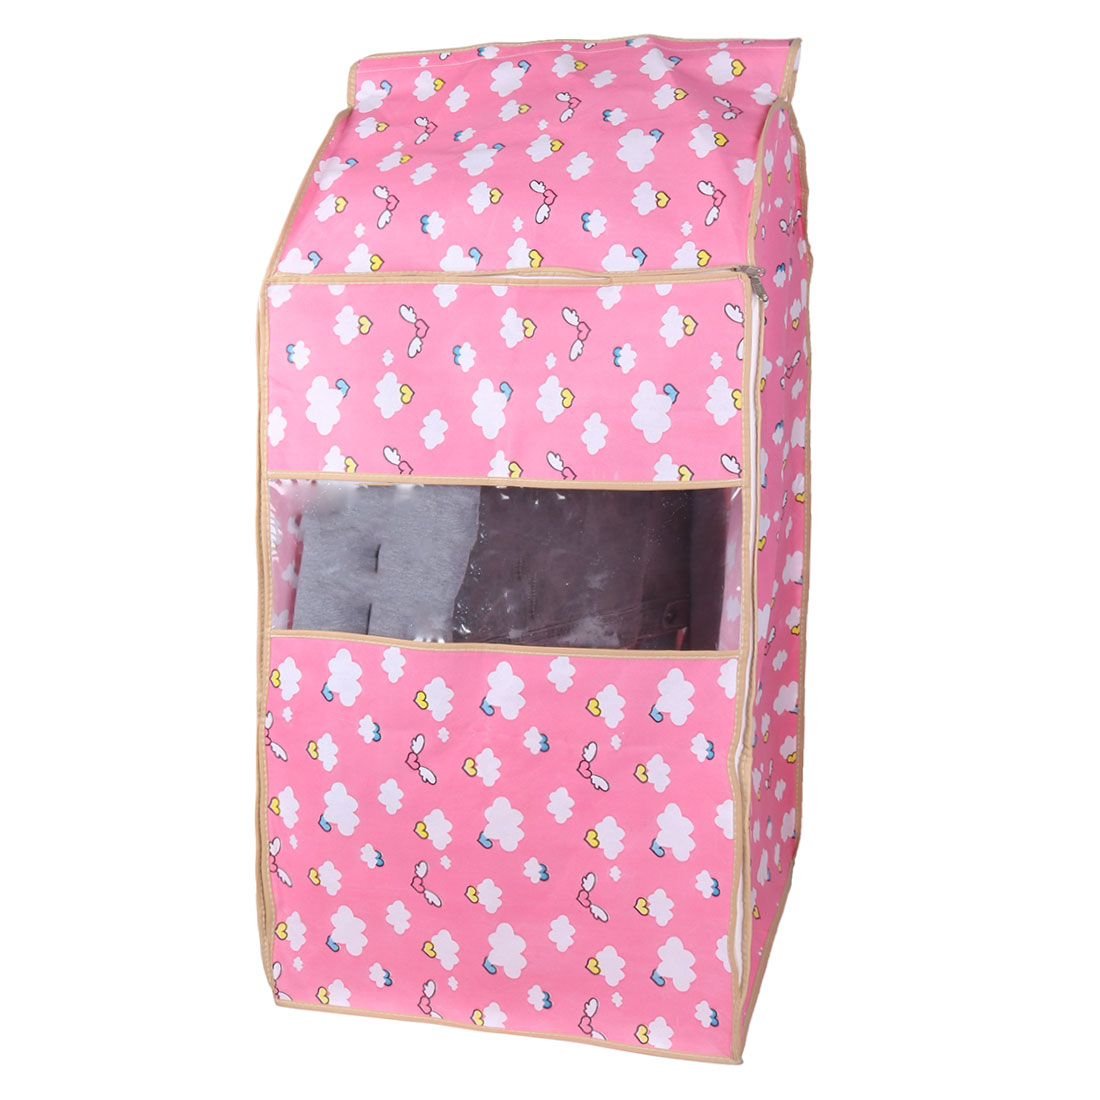 Home Non-woven Fabric Angel Pattern Zippered Garment Suit Clothing Protector Cover Bag Pink 53 x 50 x 95cm